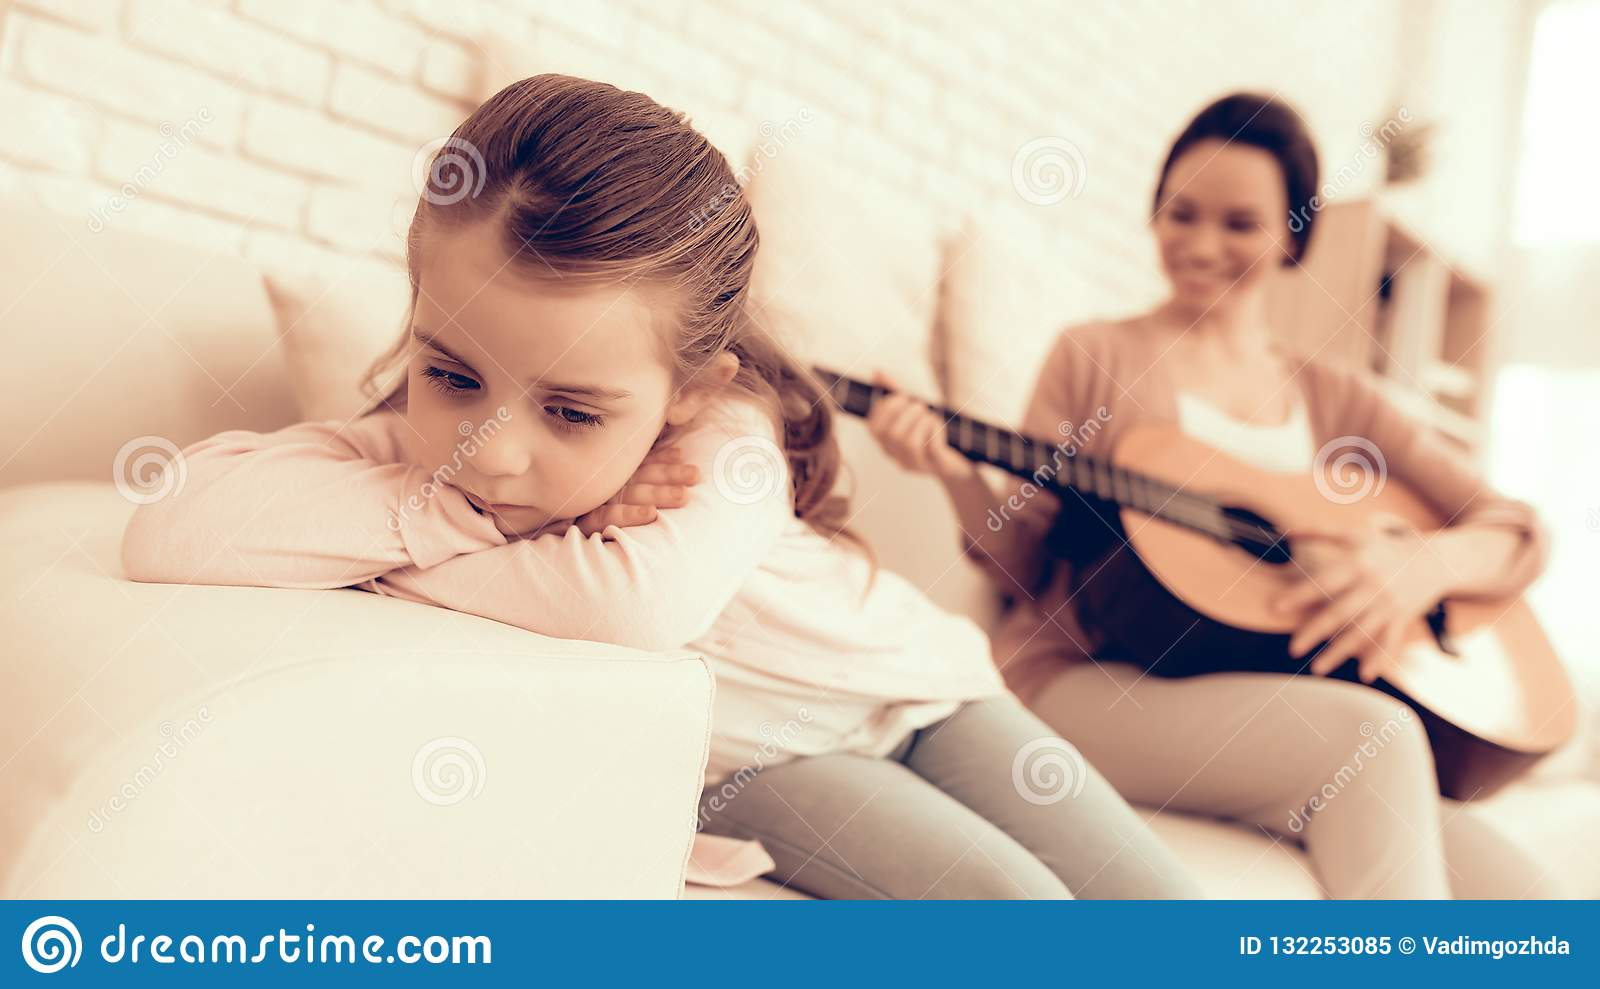 Mom with guitar in hand and sad girl lie on sofa